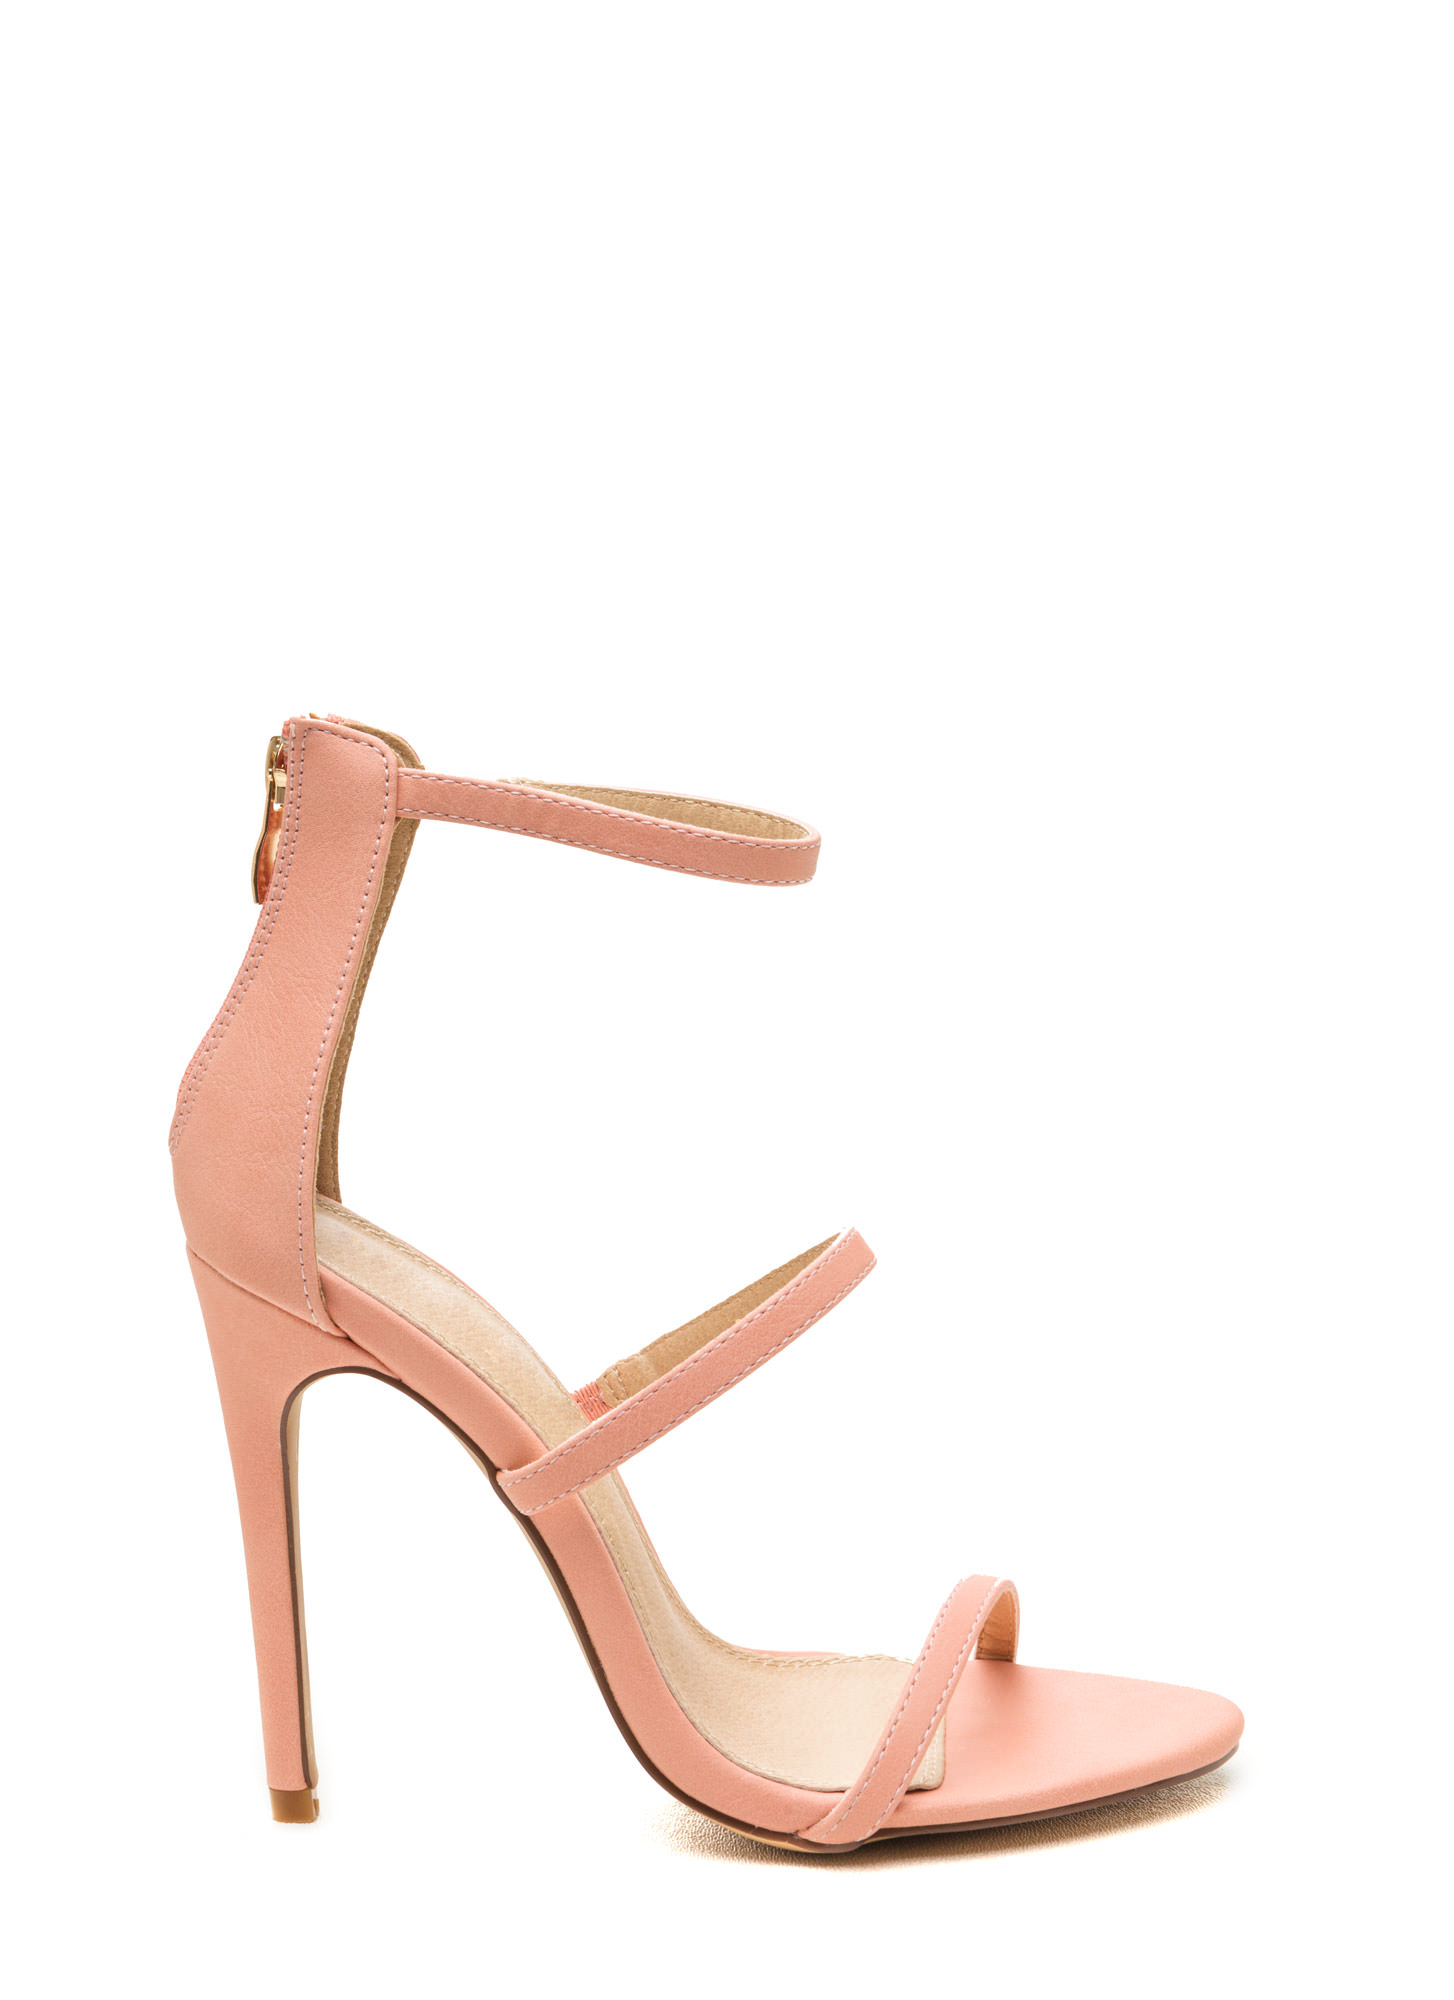 Strappy Life Single-Sole Heels BLUSH